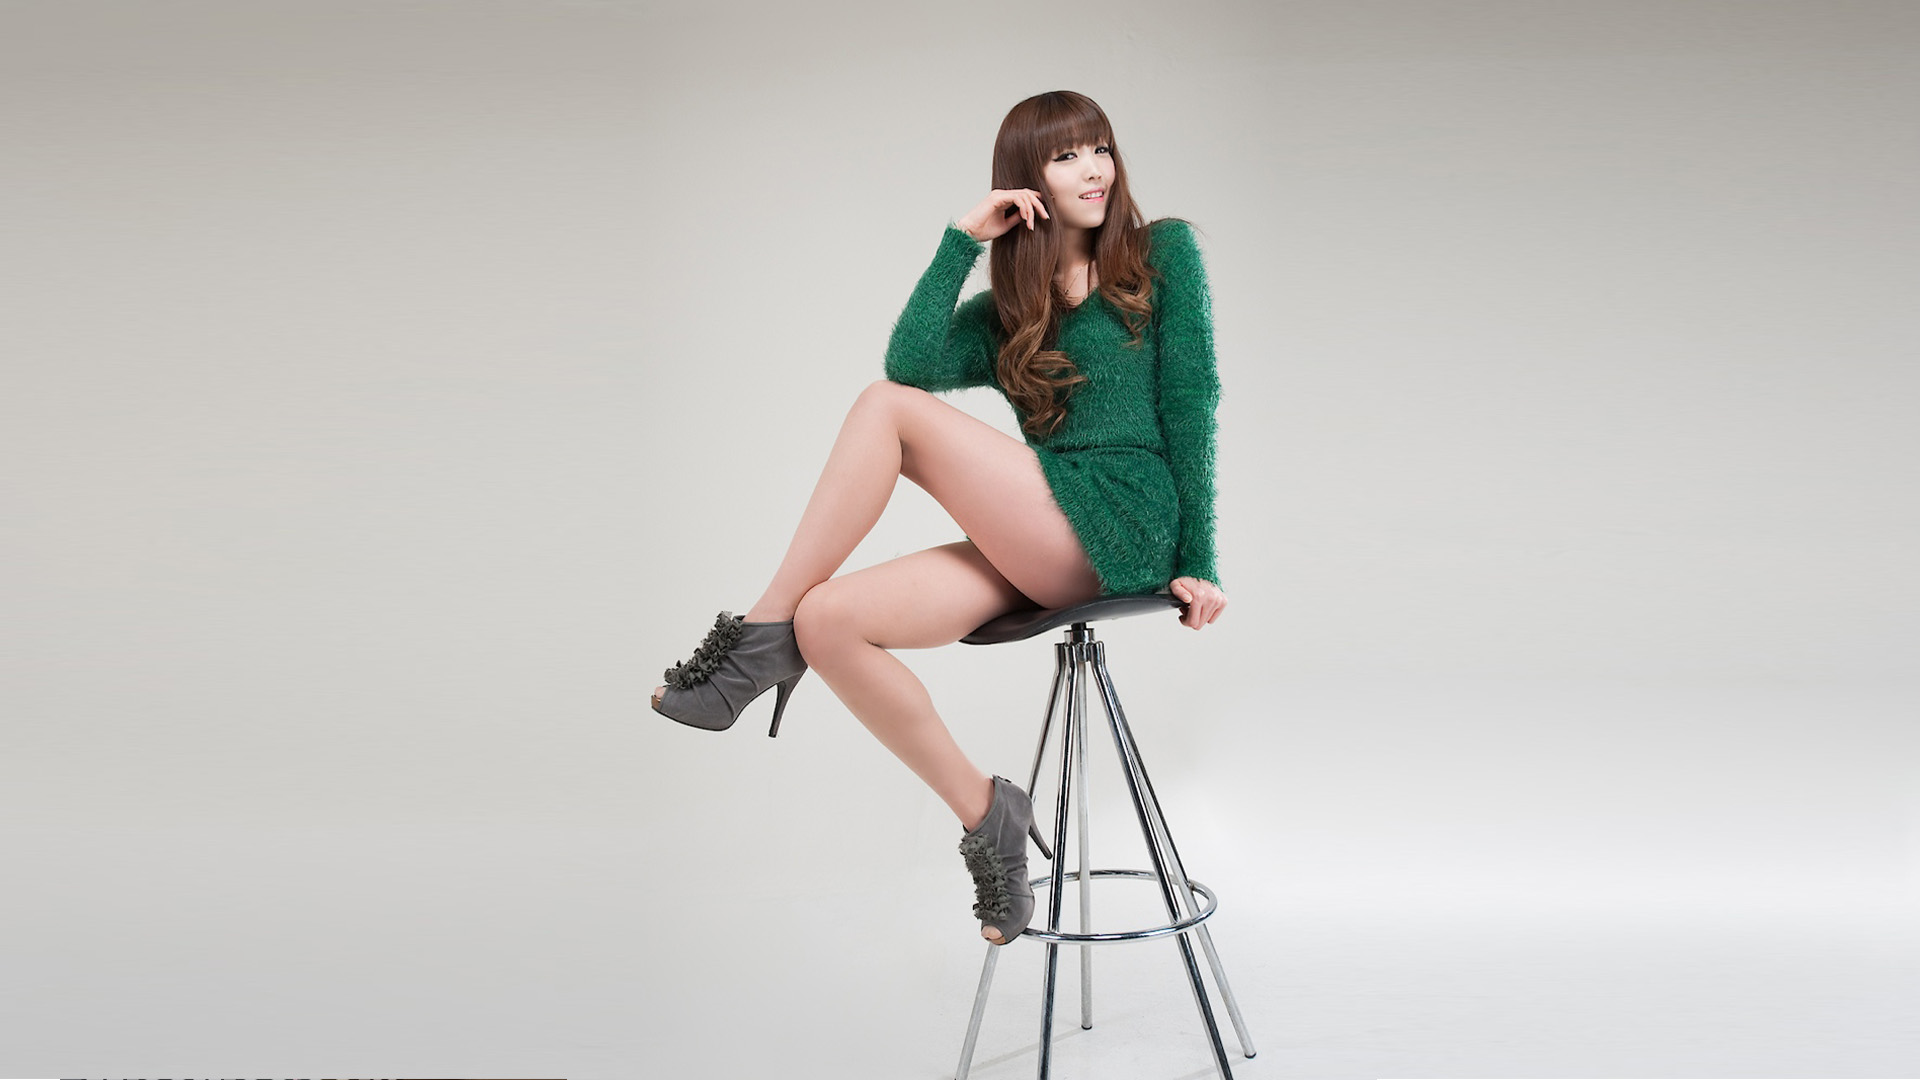 HQ Lee Eun Hye Wallpapers | File 213.78Kb